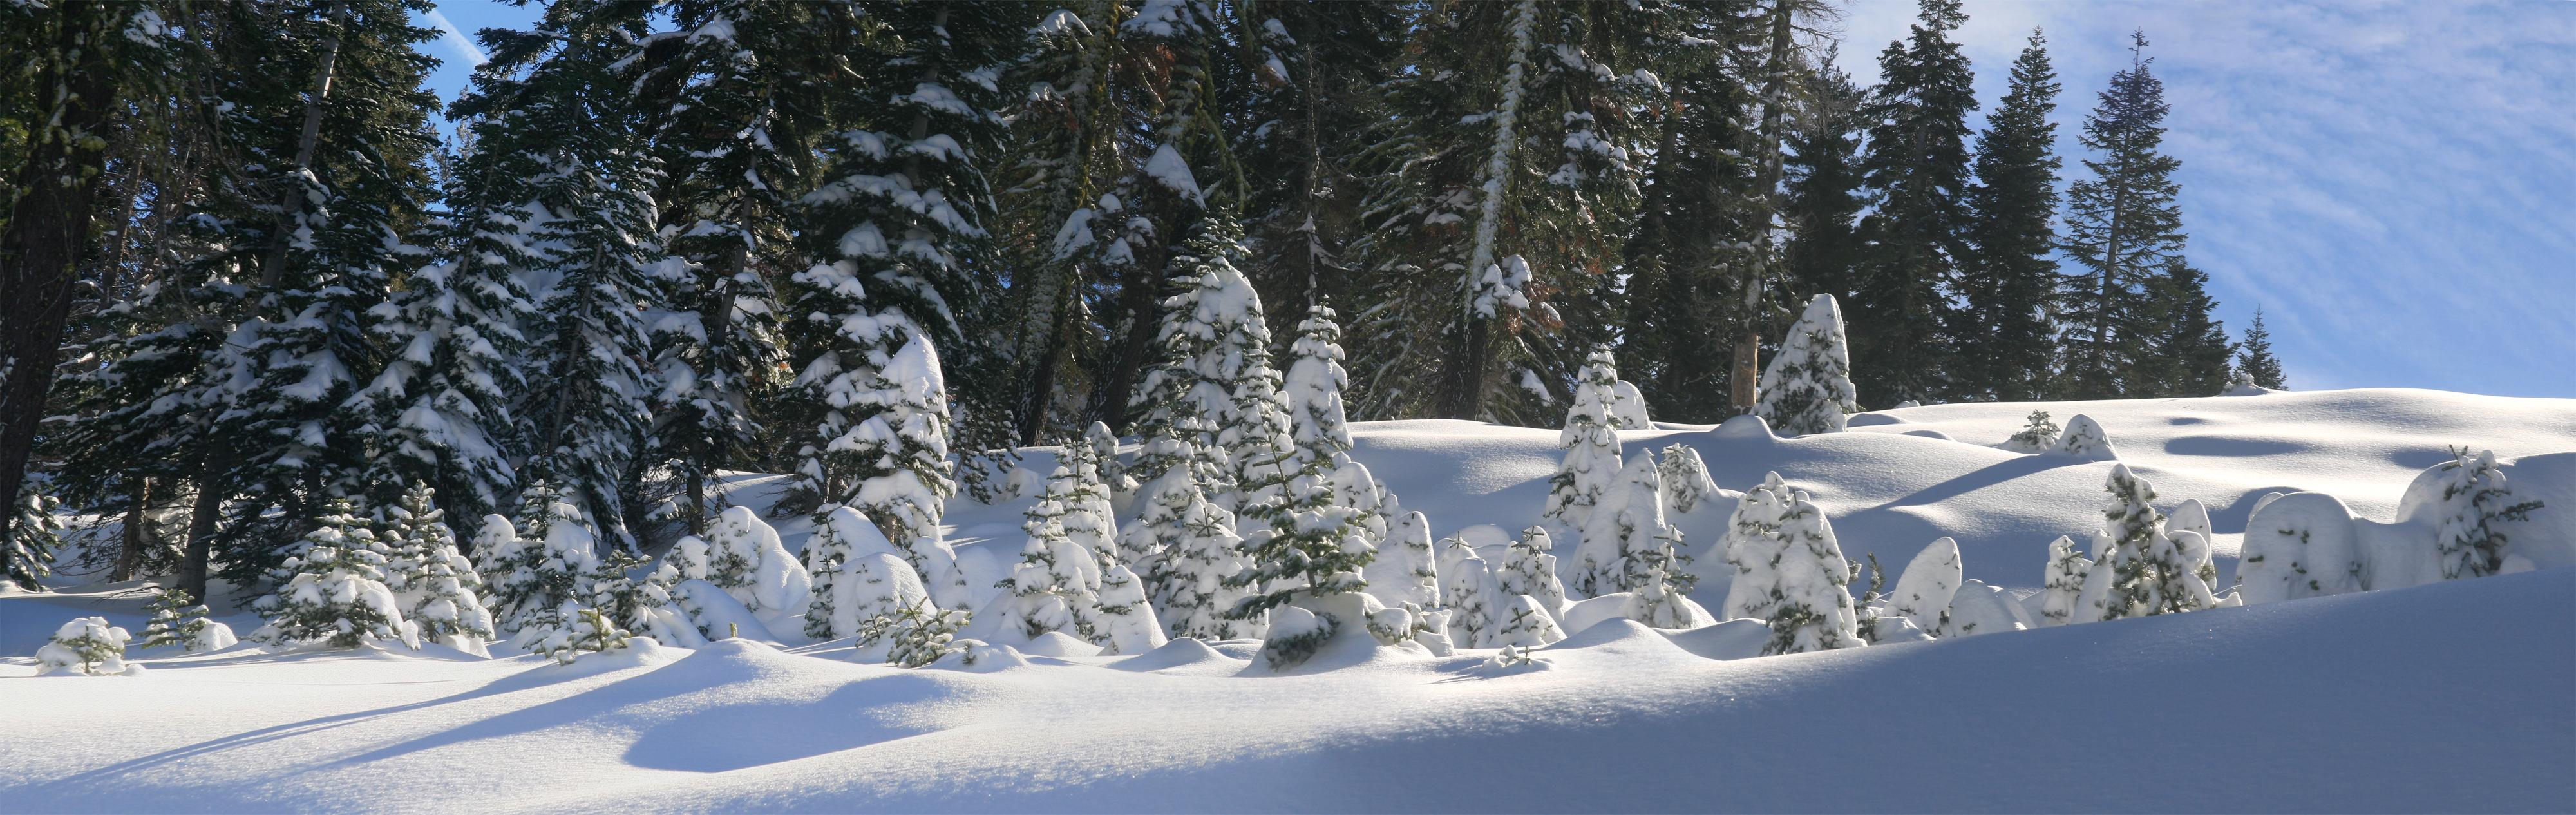 English: Trees covered by snow in Boreal, Cali...